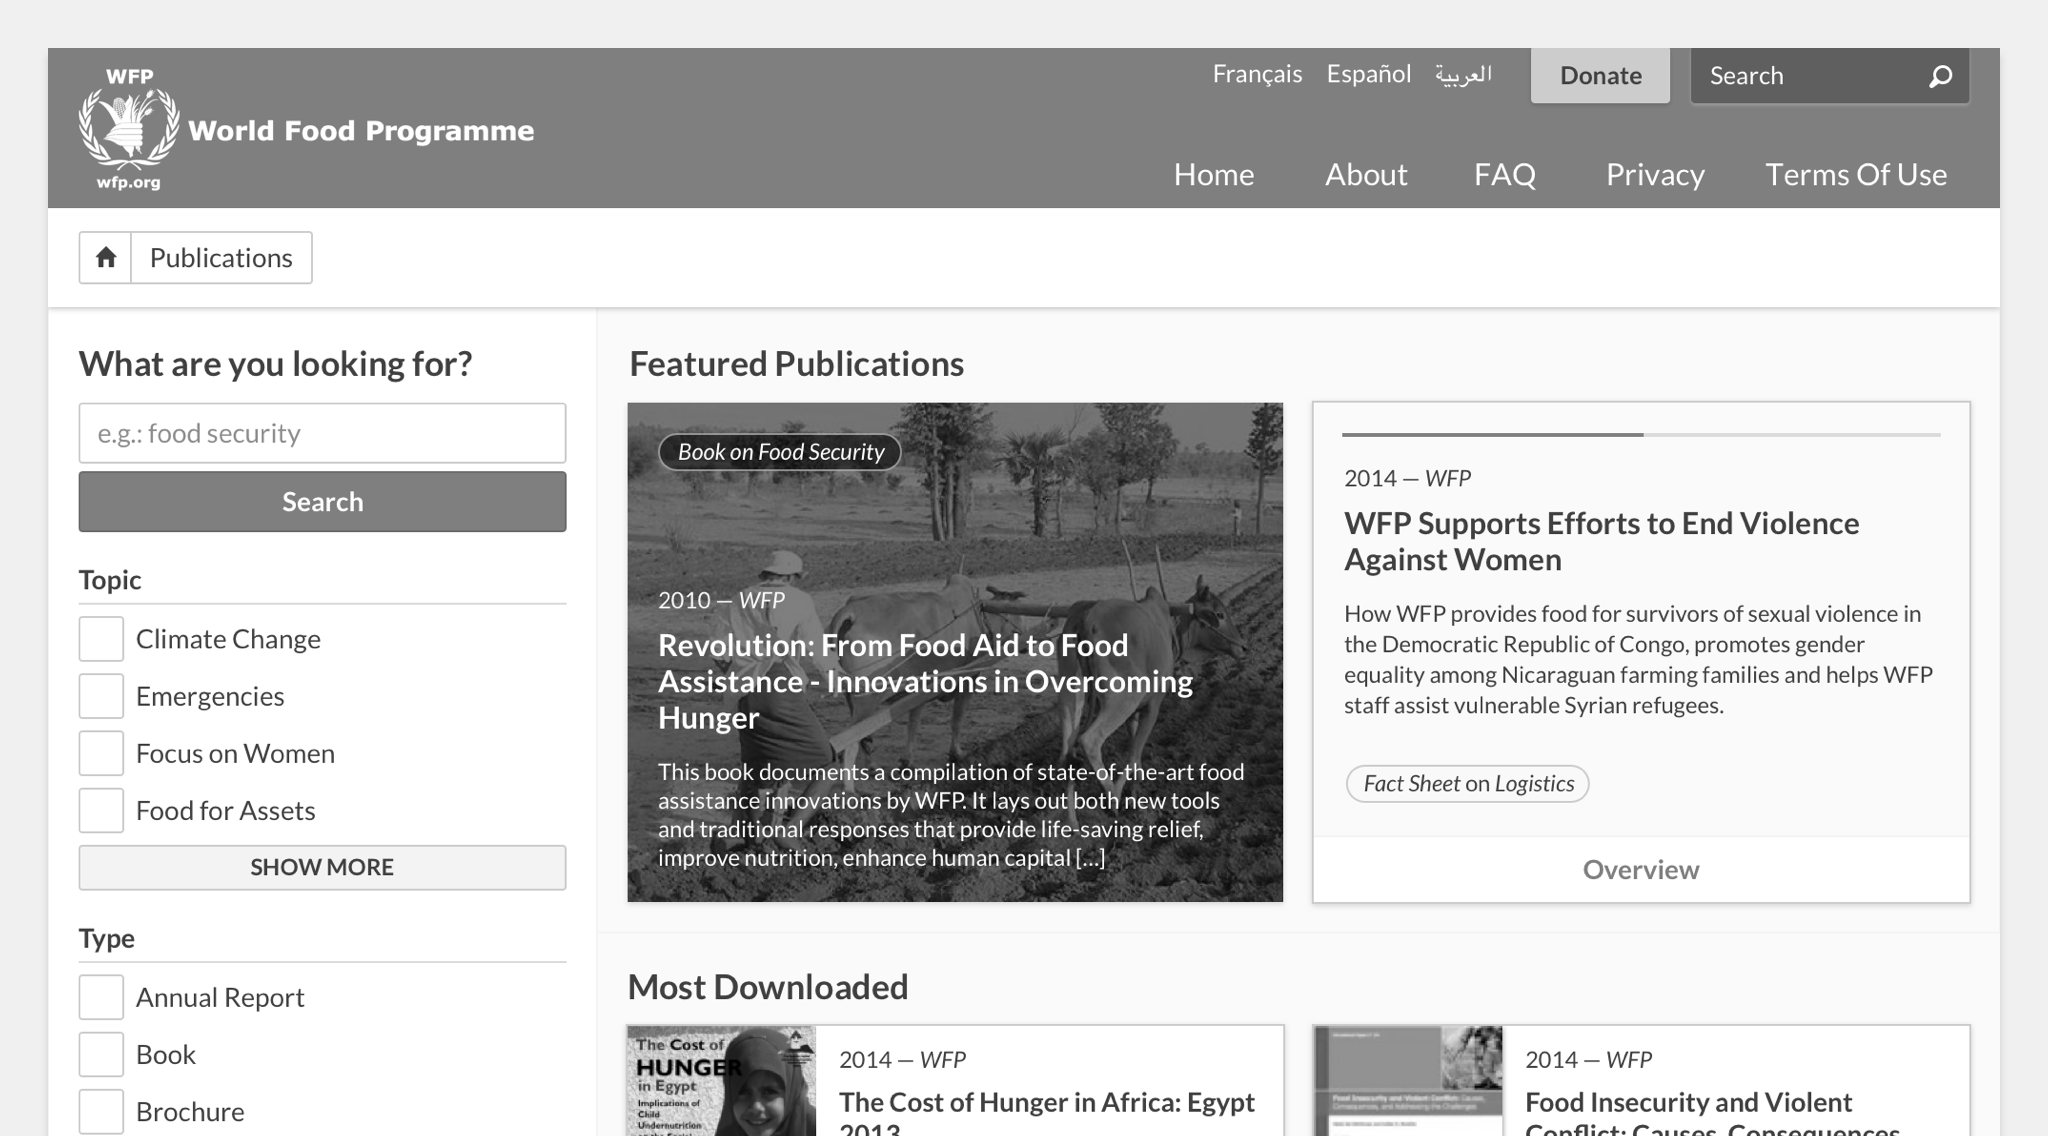 Example of UI with a greyscale overlay, exposing elements with weak contrast.